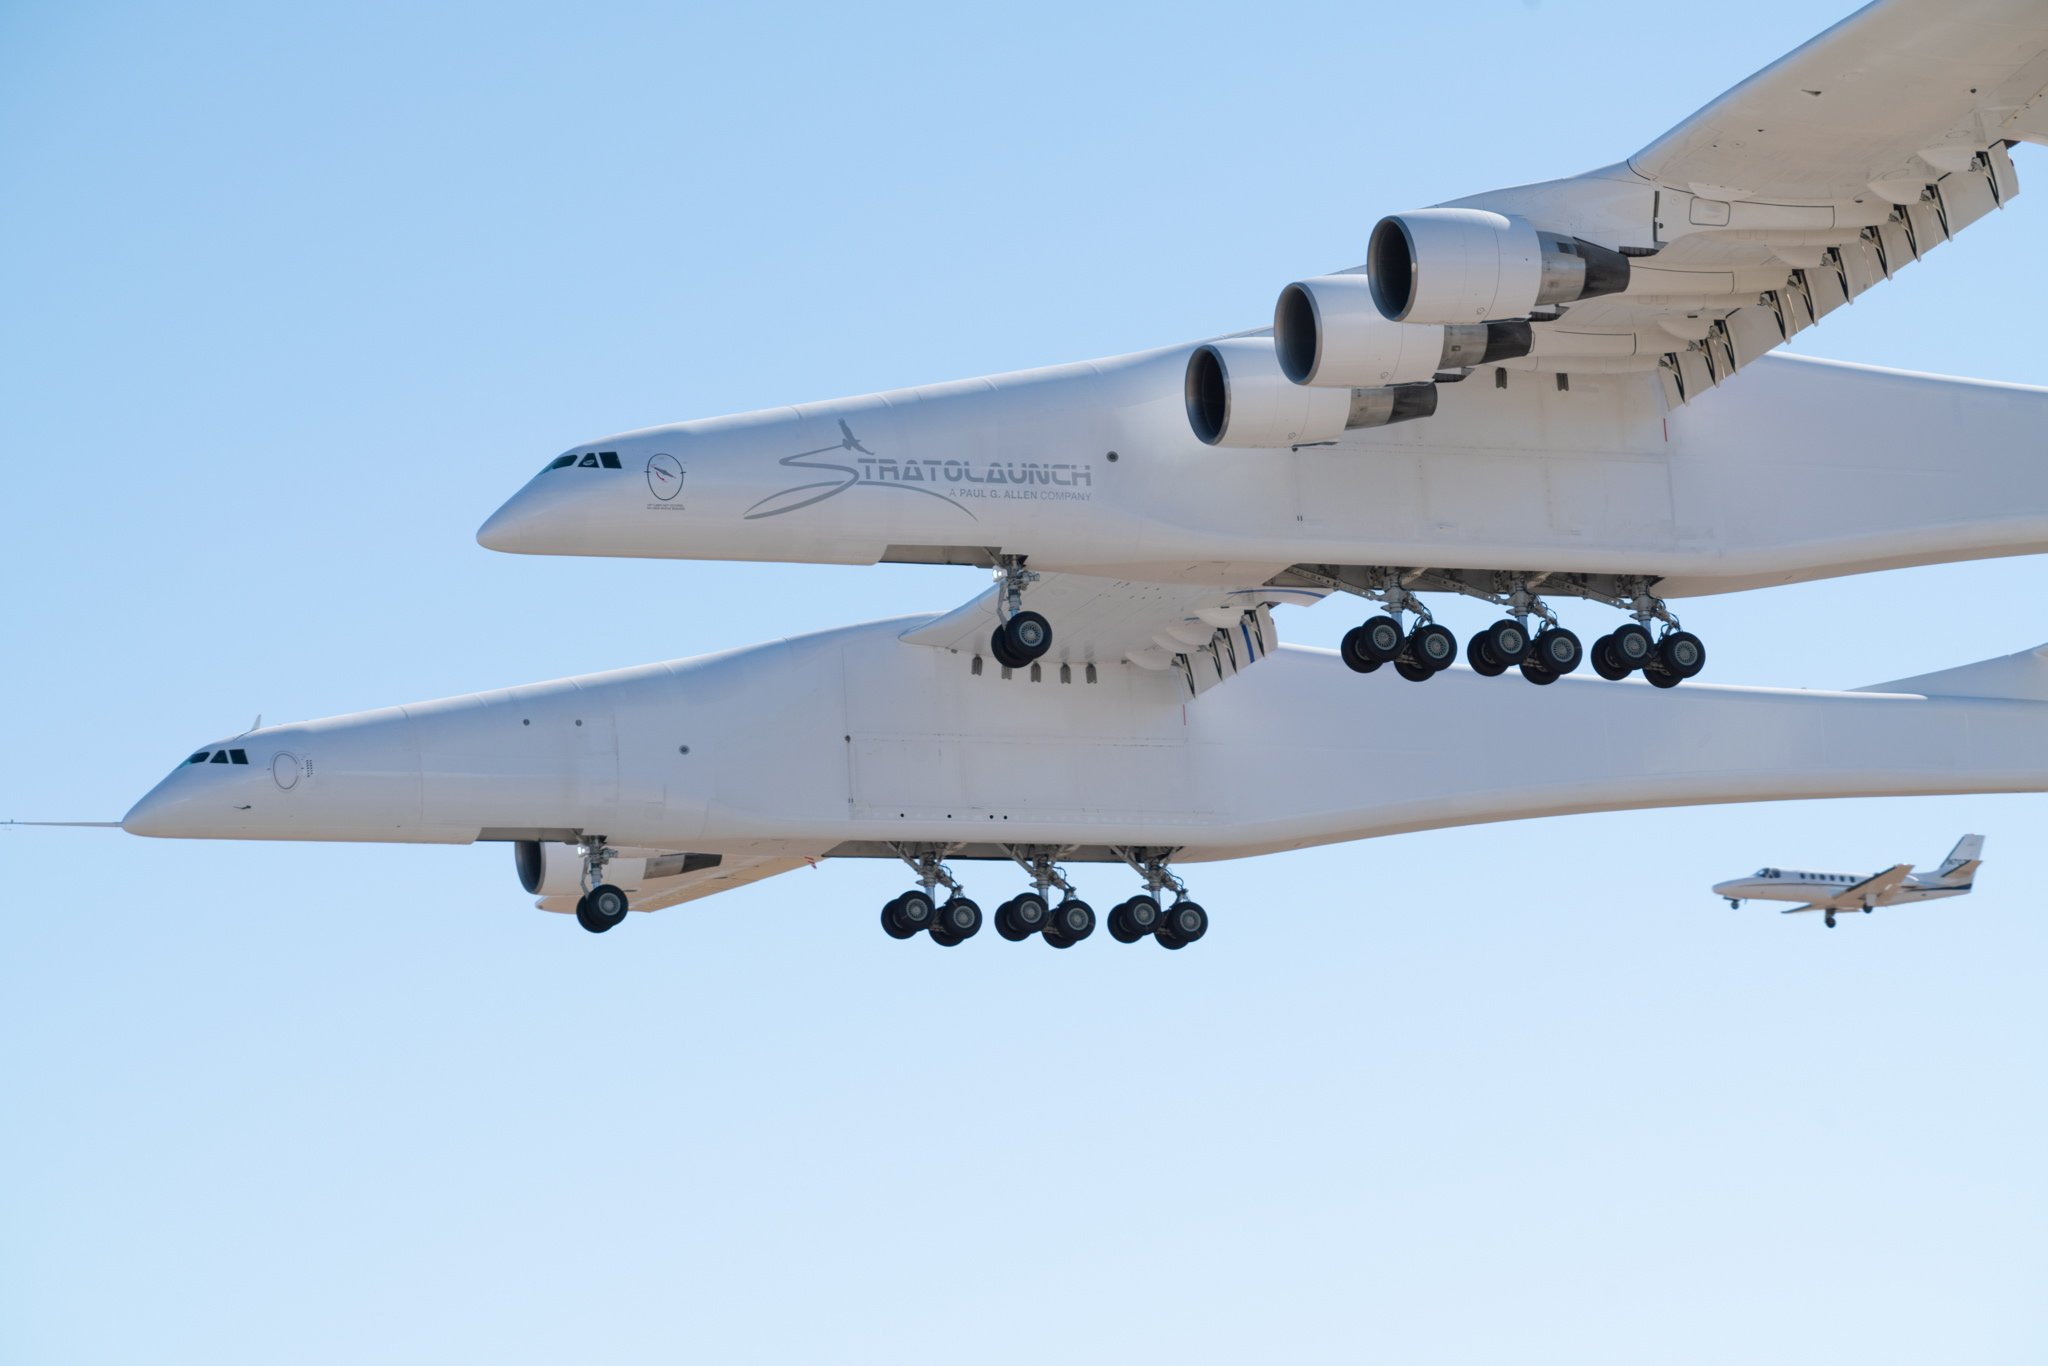 epa07505435 A handout photo made available by Stratolaunch Systems Corporation shows the Stratolaunch aircraft during a test flight over the Mojave Desert, California, USA, 13 April 2019 (issued 14 April 2019). The Stratolaunch, the world's largest aircraft by wingspan, successfully completed its first test on 13 April. The plane, which has been eight years in the making is designed to act as a flying launch pad for satellites. During the test flight it reached a maximum speed of 189 mph and flew for 2.5 hours over the Mojave Desert at altitudes up to 17,000 feet. EPA/STRATOLAUNCH HANDOUT -- MANDATORY CREDIT: STRATOLAUNCH -- HANDOUT EDITORIAL USE ONLY/NO SALES